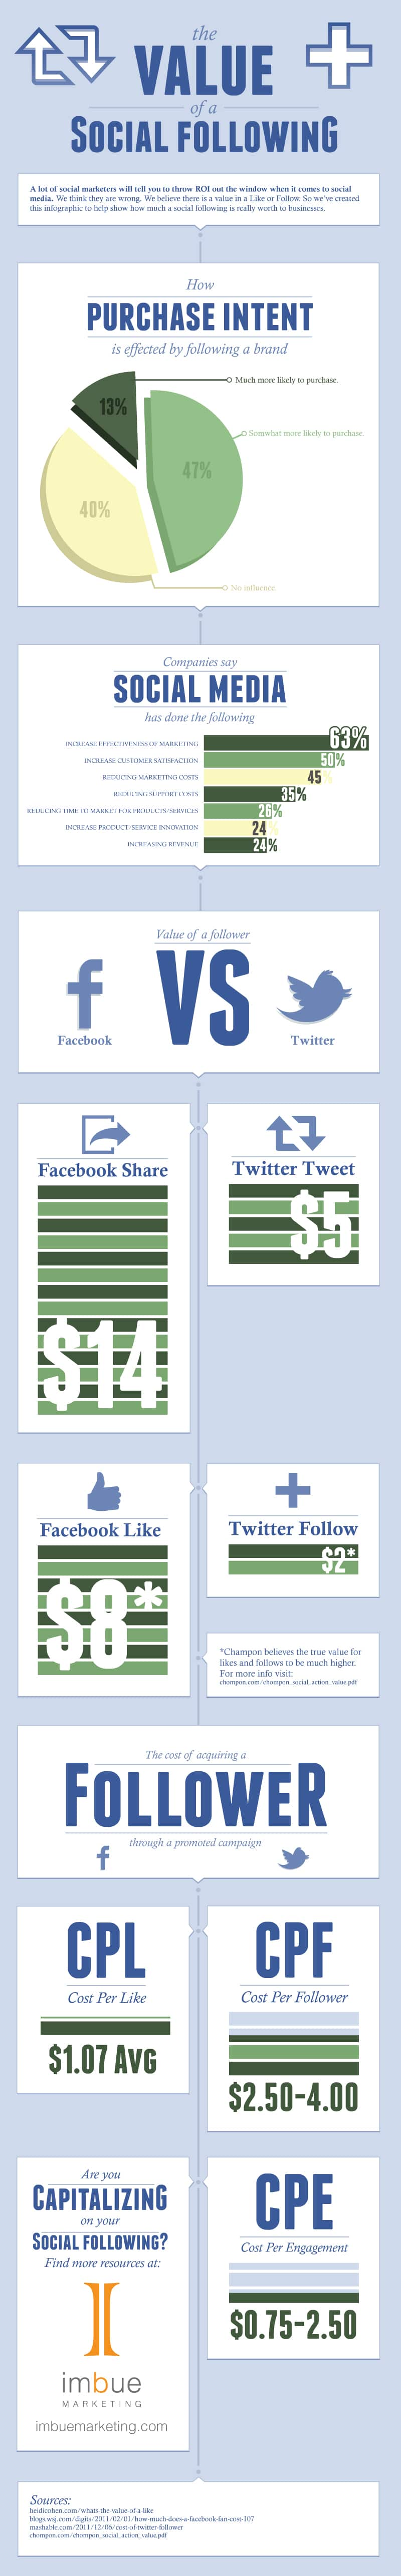 value-of-social-following-infographic